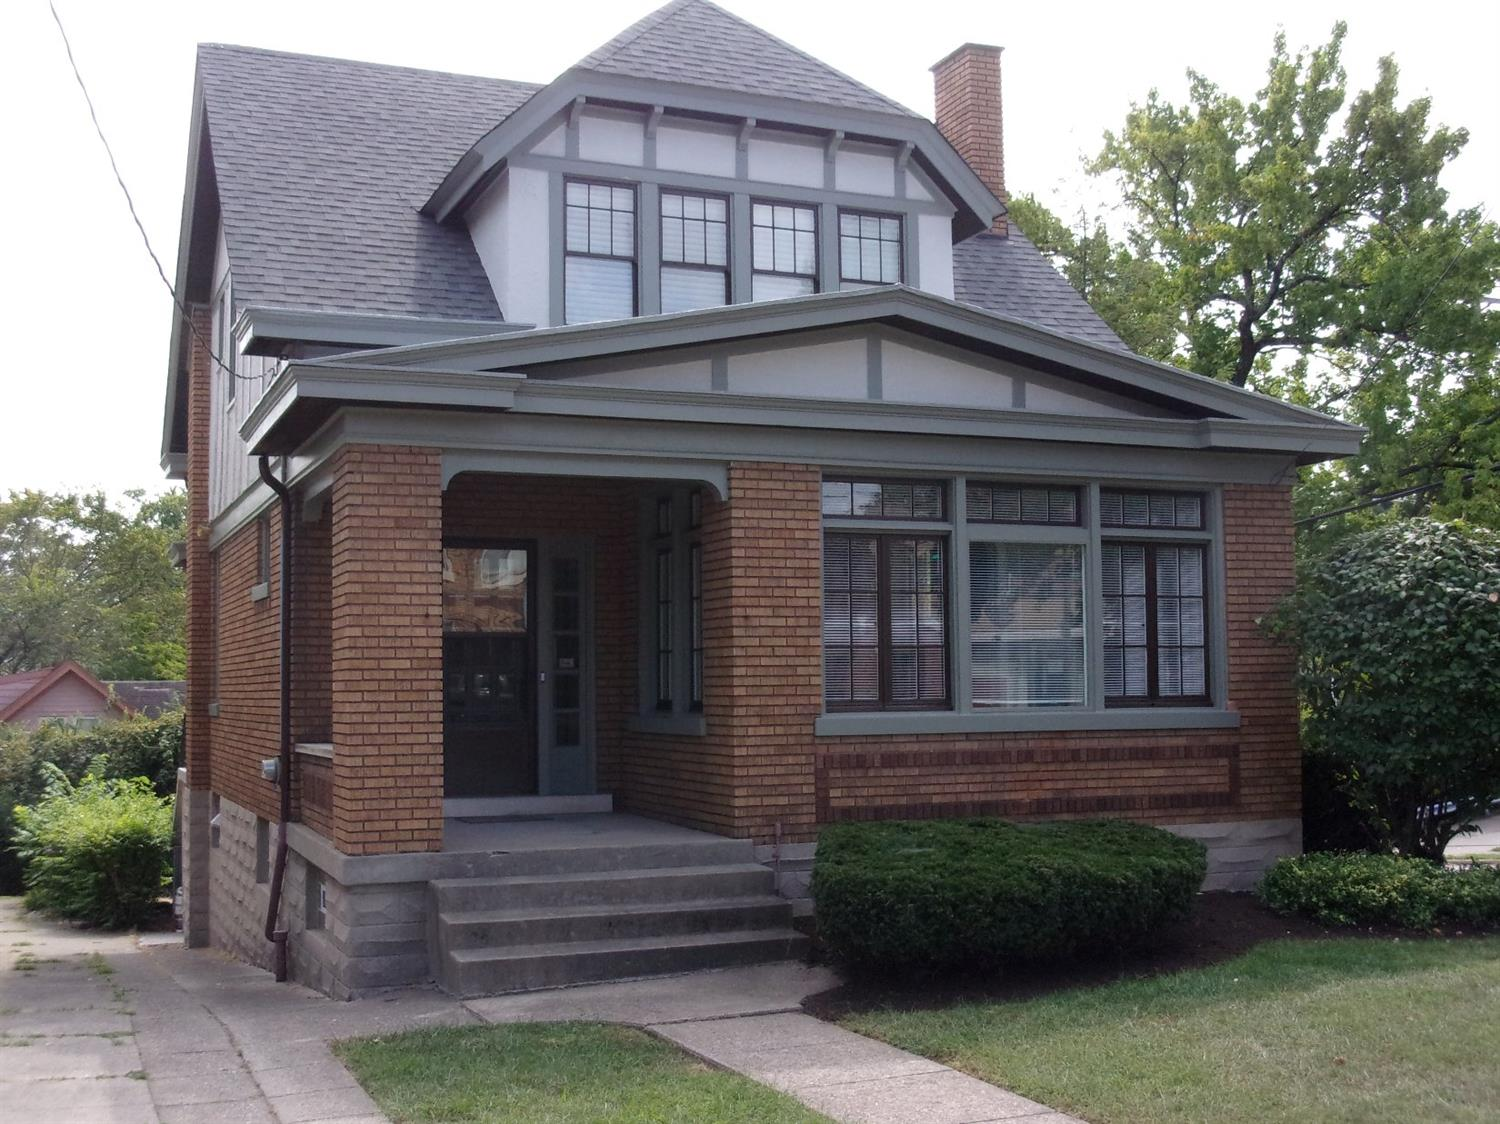 4463 W Eighth St Price Hill, OH